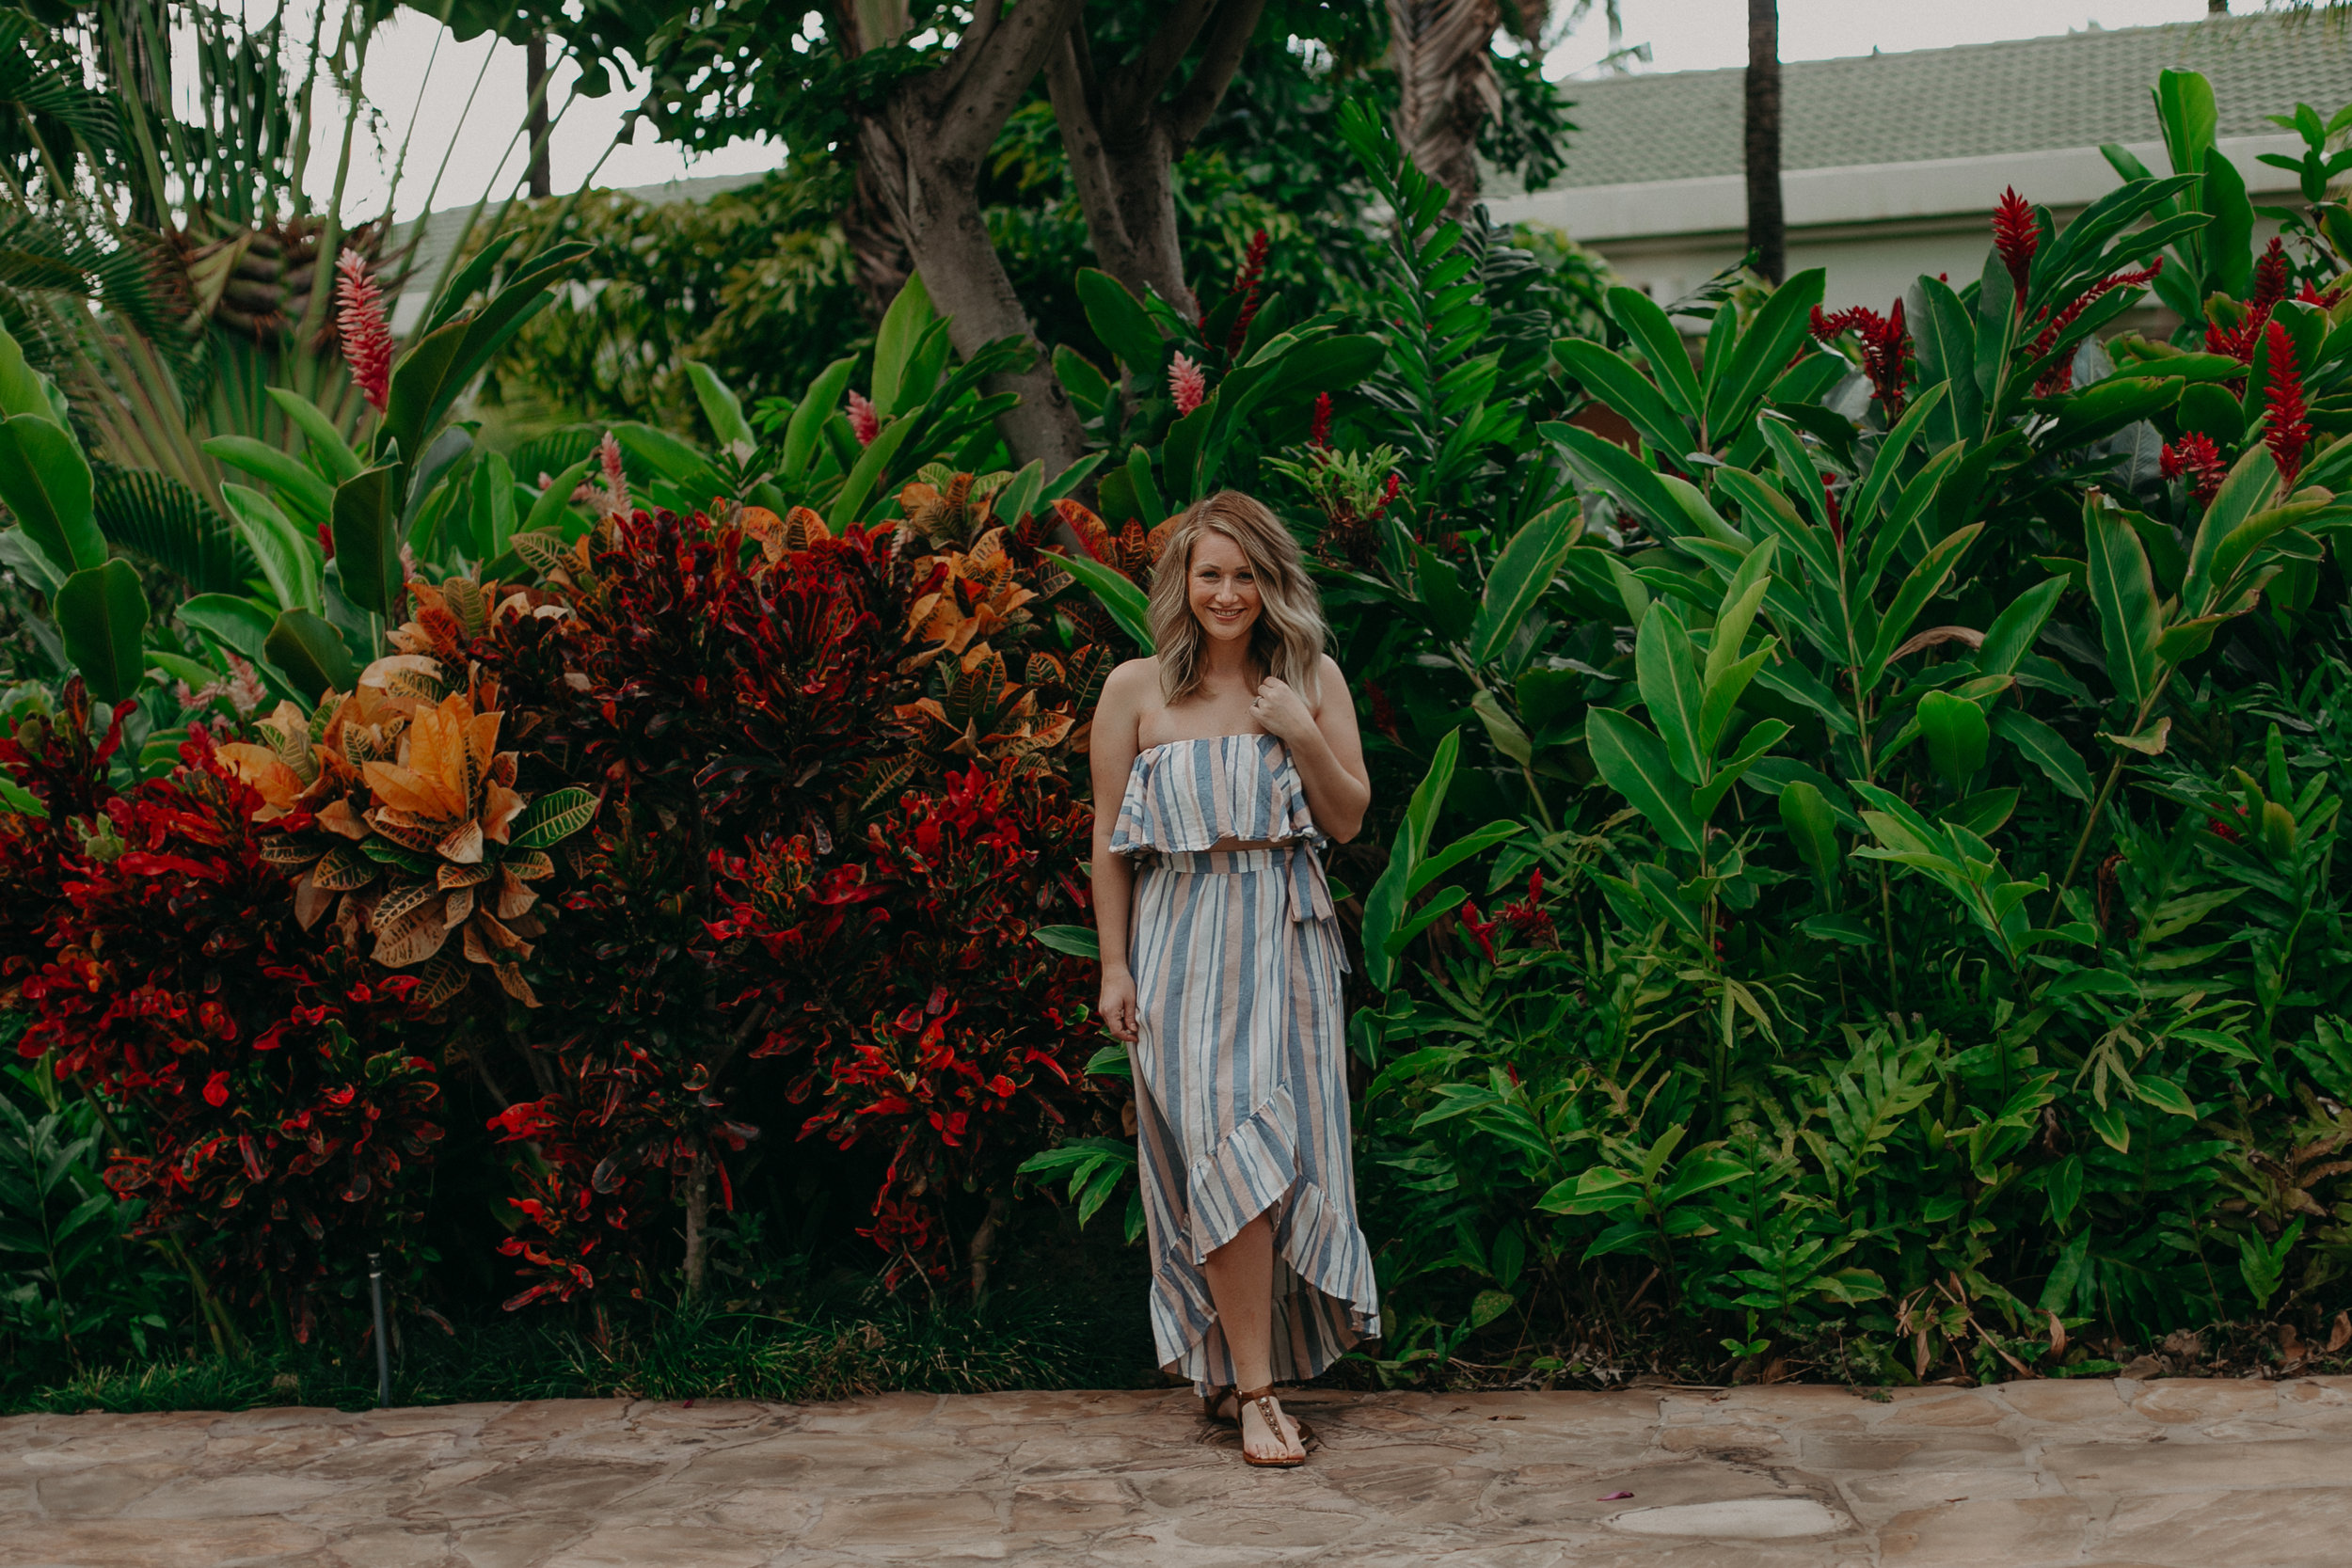 fashion_model_maui_grand_wailea_gardens.jpg